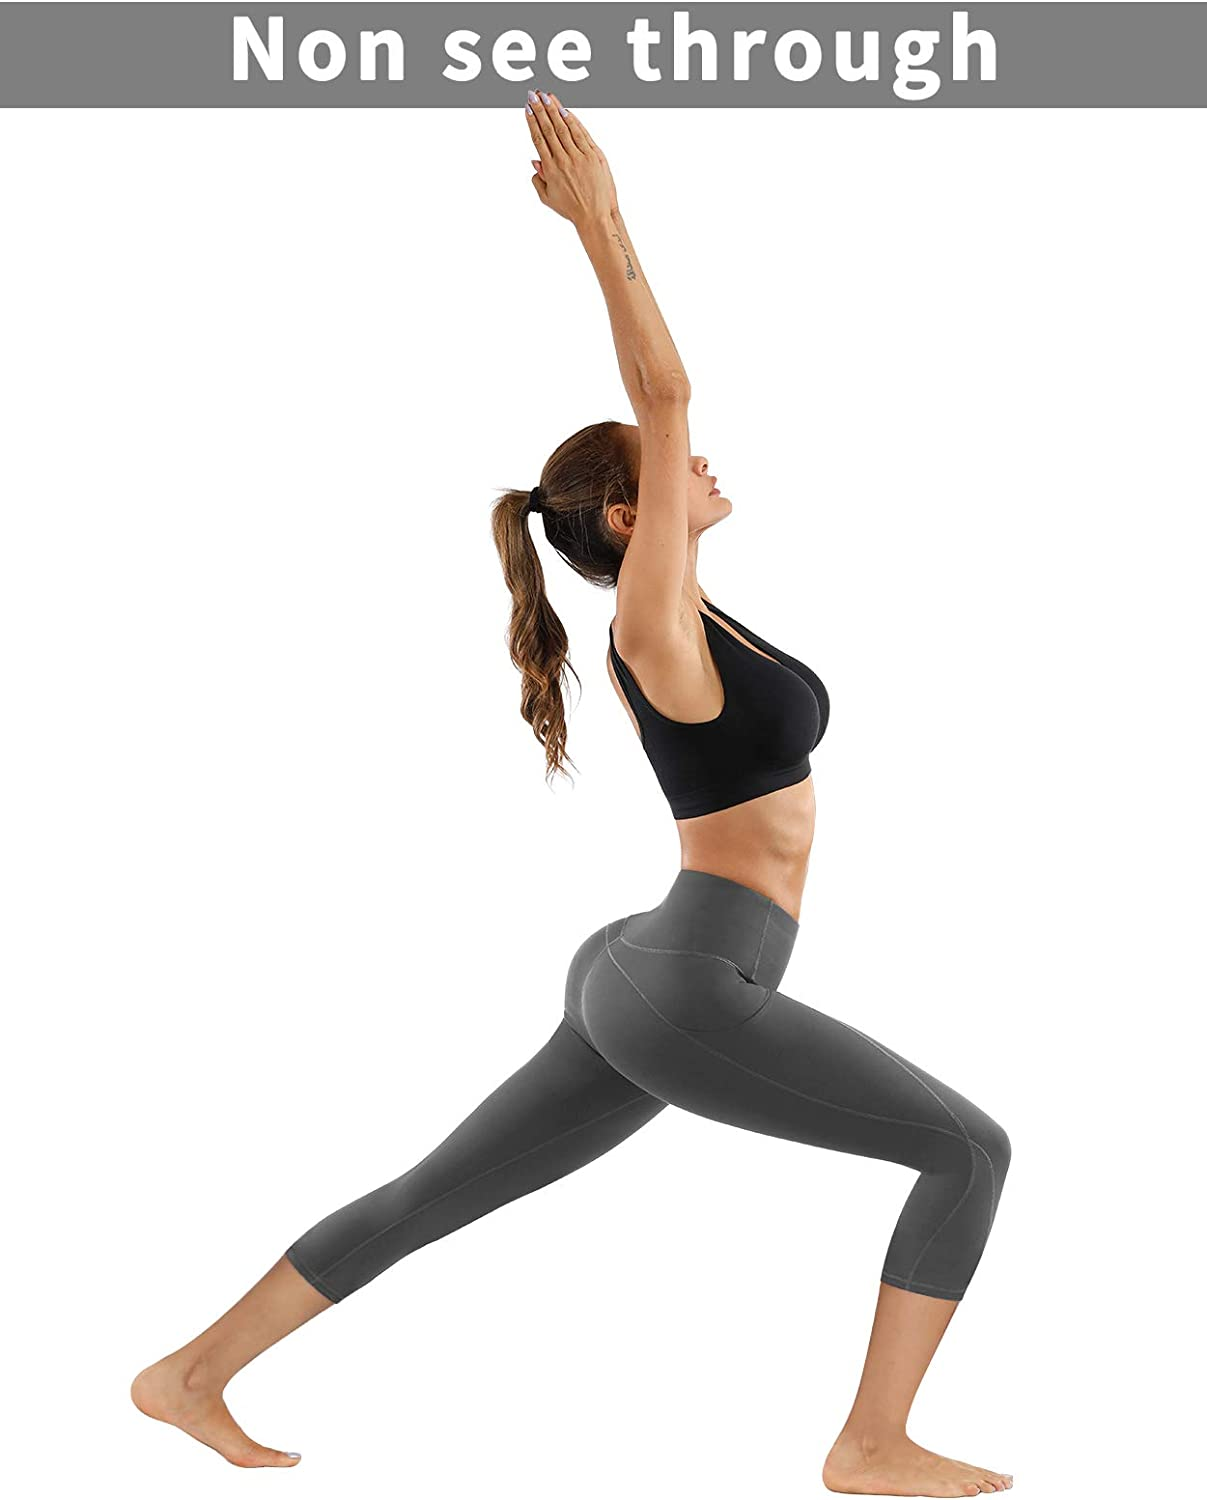 Workout 4 Way Stretch Yoga Leggings PHISOCKAT 2 Pack High Waist Yoga Pants with Pockets Tummy Control Capris Leggings